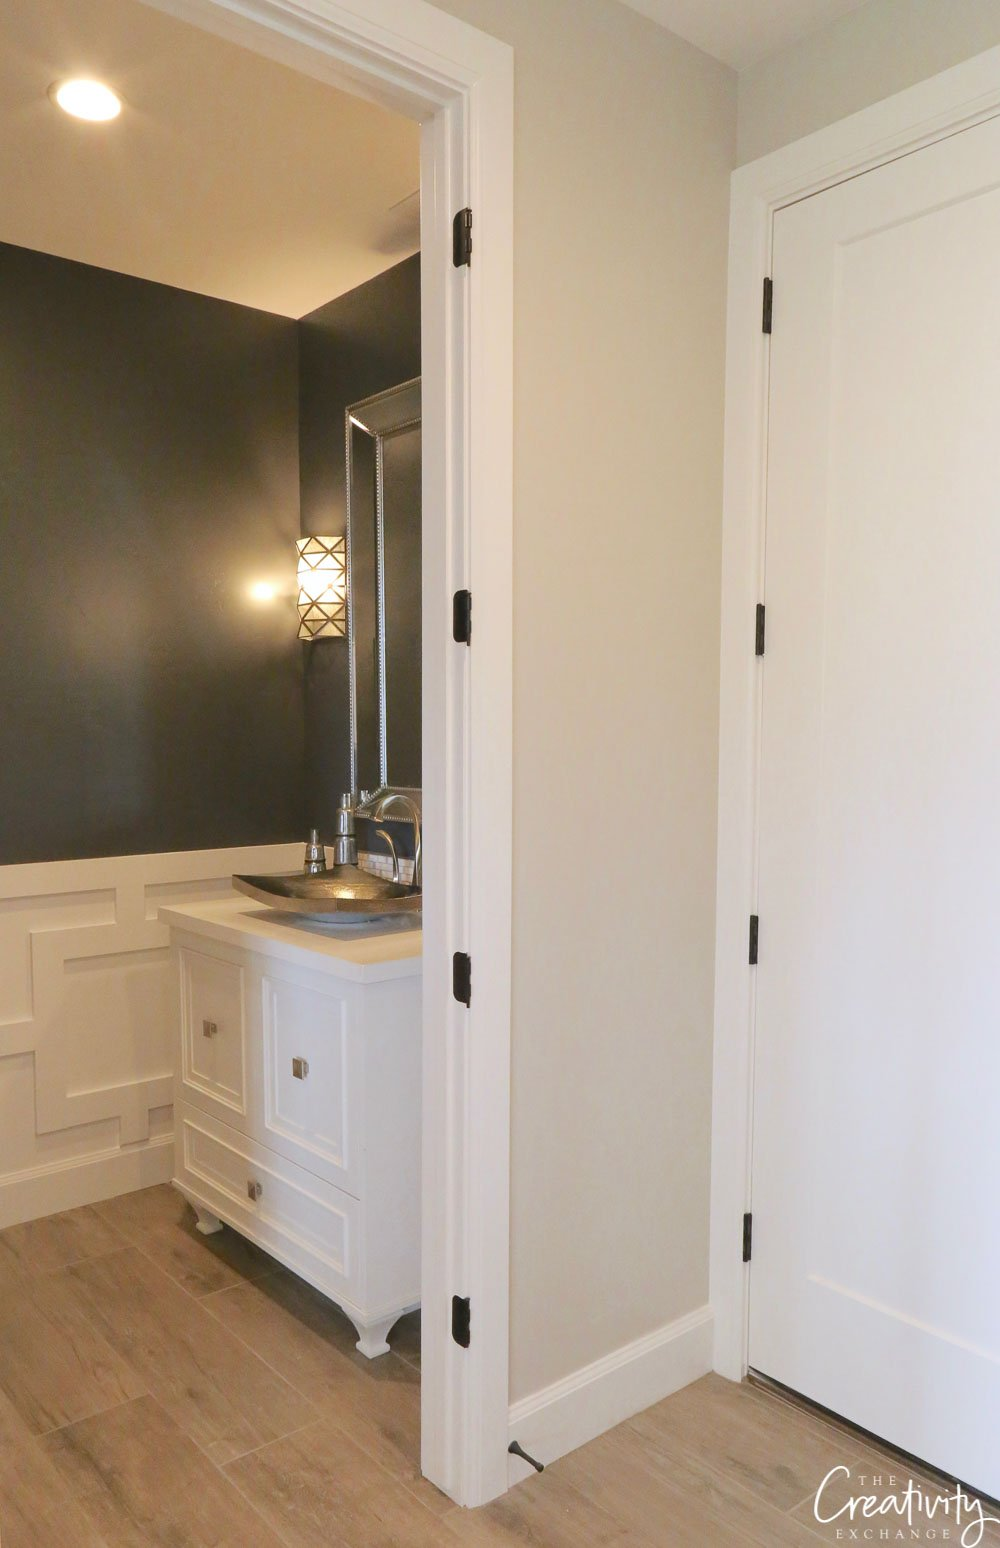 Wall color is Sherwin Williams Peppercorn.